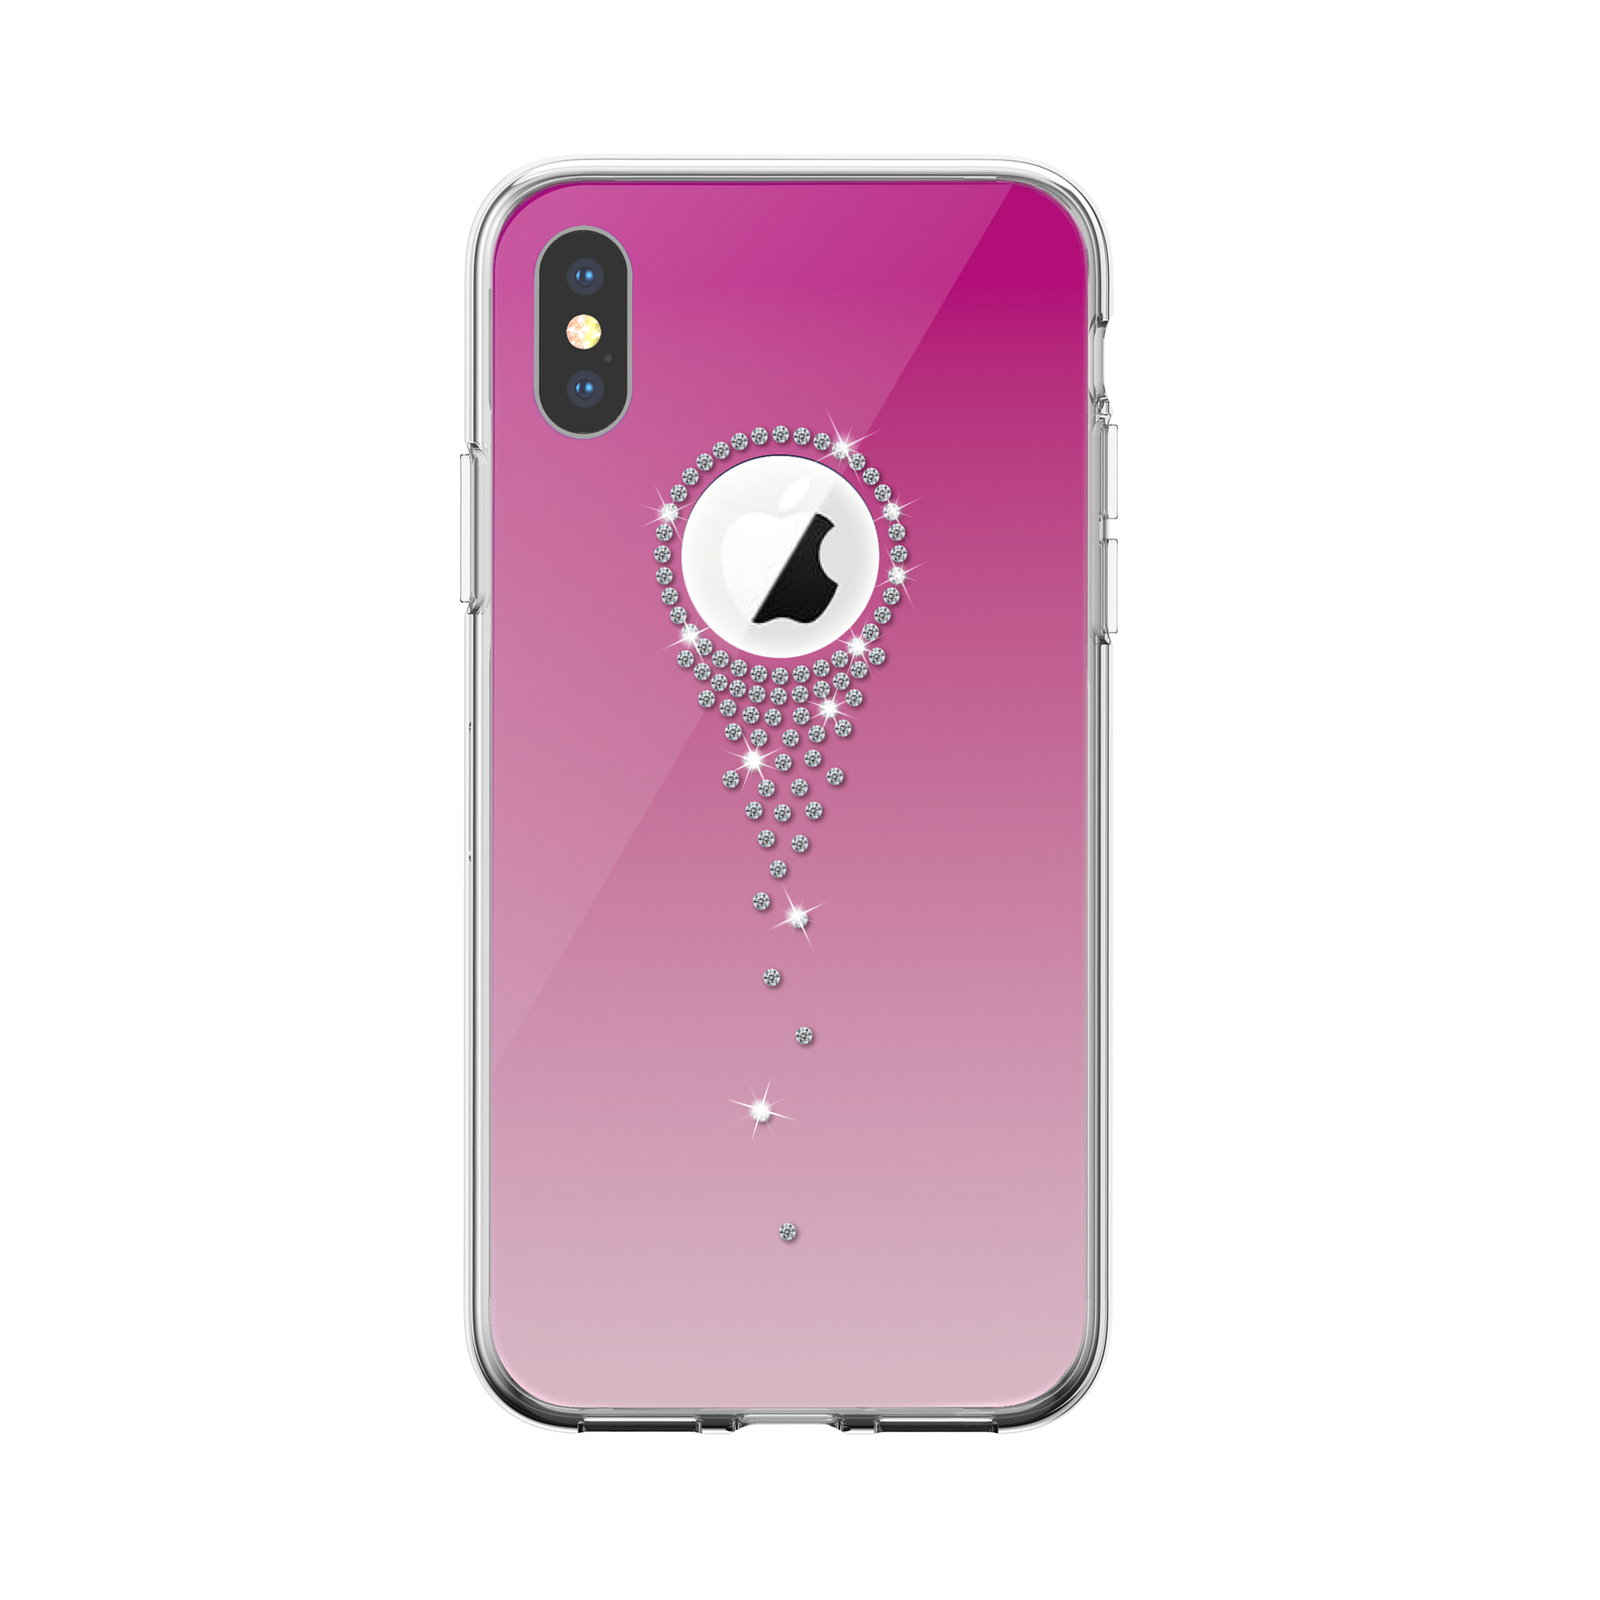 iPhone-XS-Max-XR-XS-X-Case-Genuine-DEVIA-Bling-Diamond-Ultra-Hybrid-Case-Cover thumbnail 14